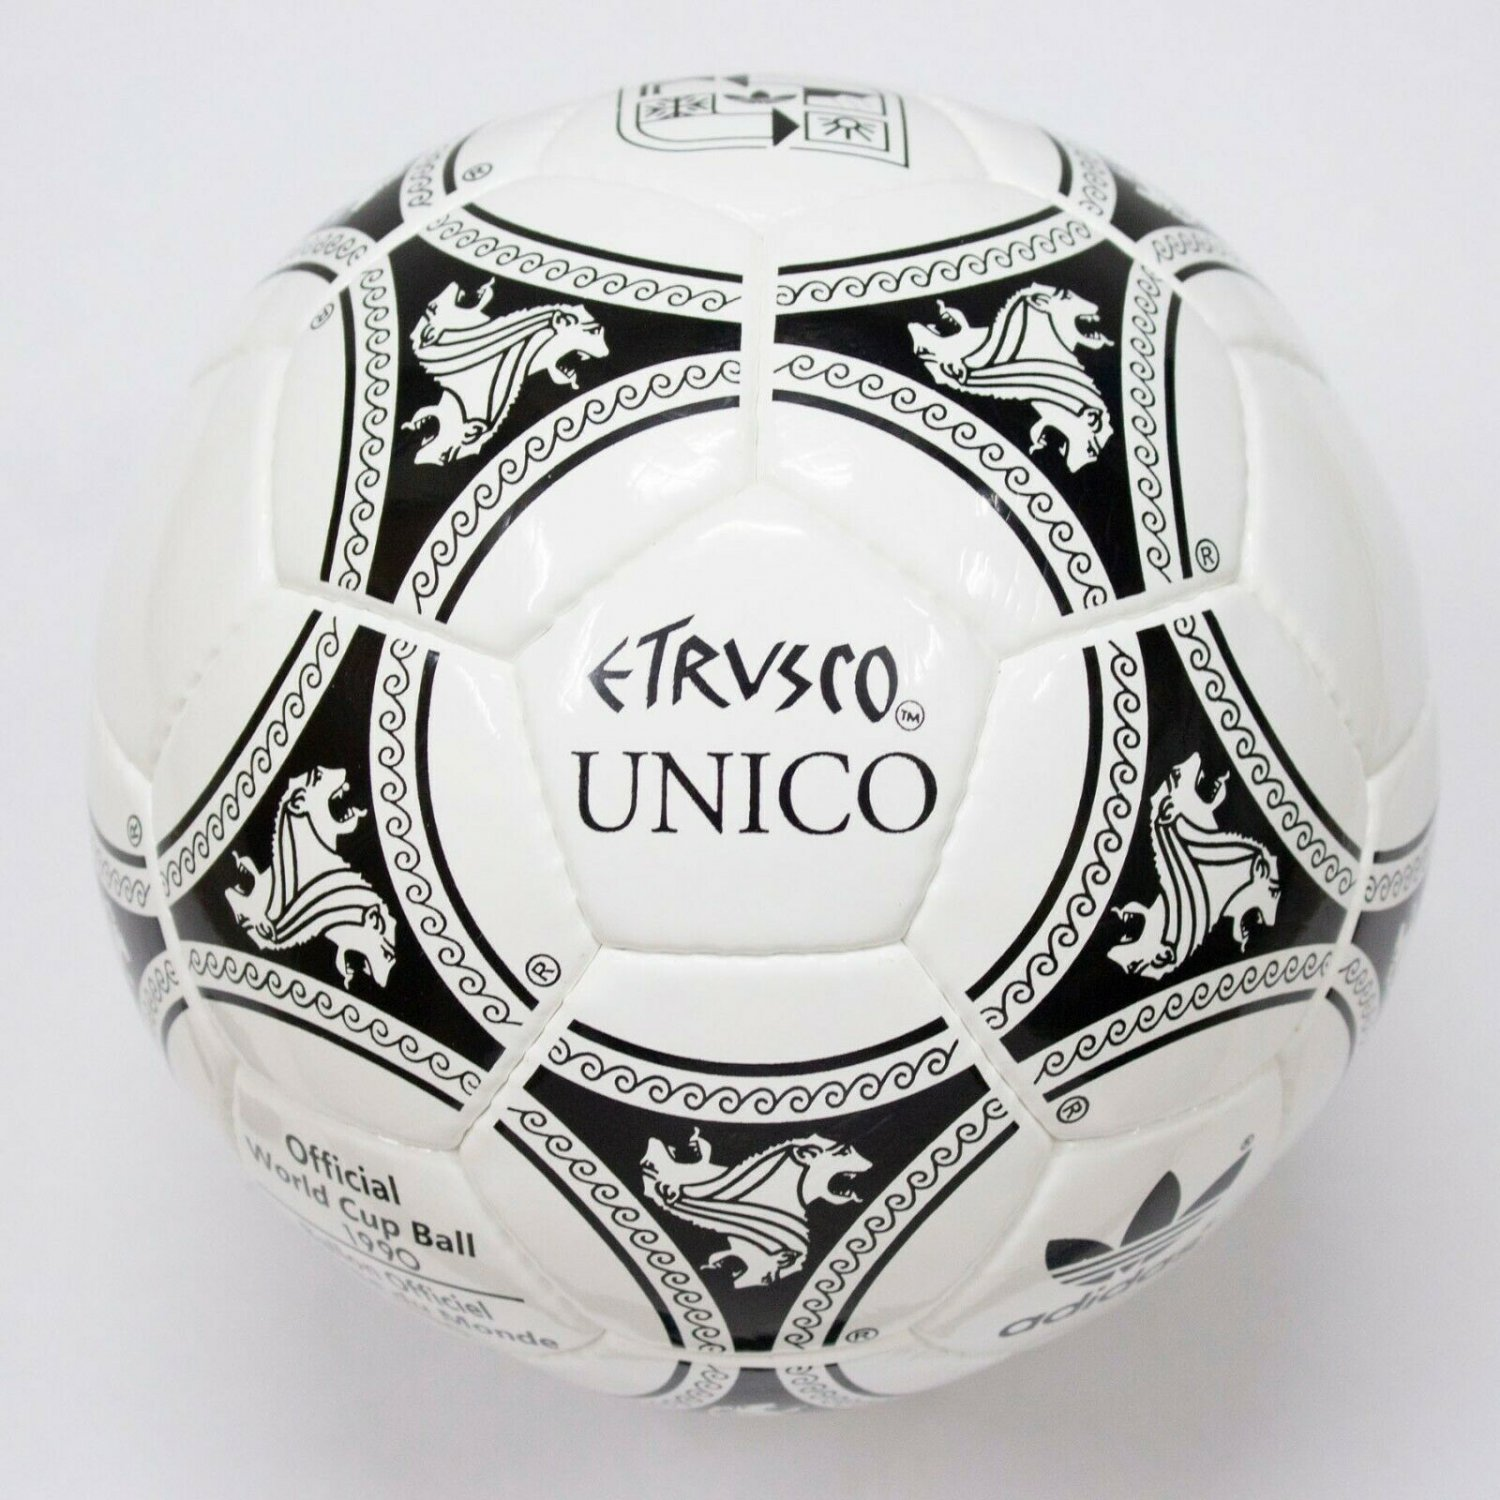 Adidas Etrusco Unico Football | FIFA Approved | Official World Cup Match Ball 1990